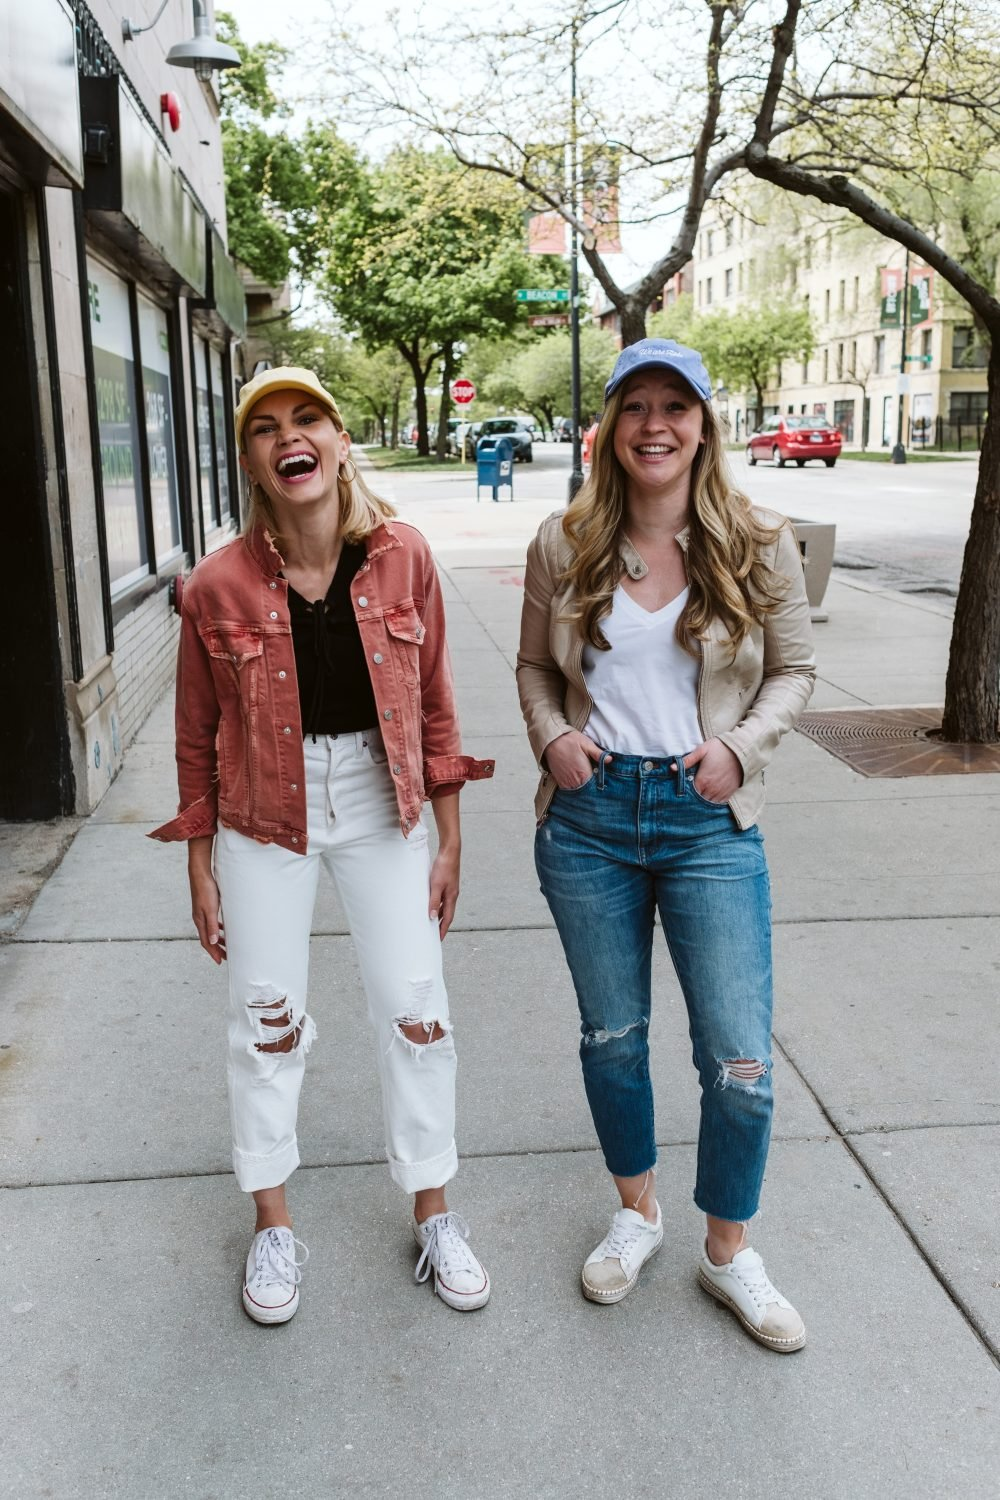 Favorite jeans and shoes for summer